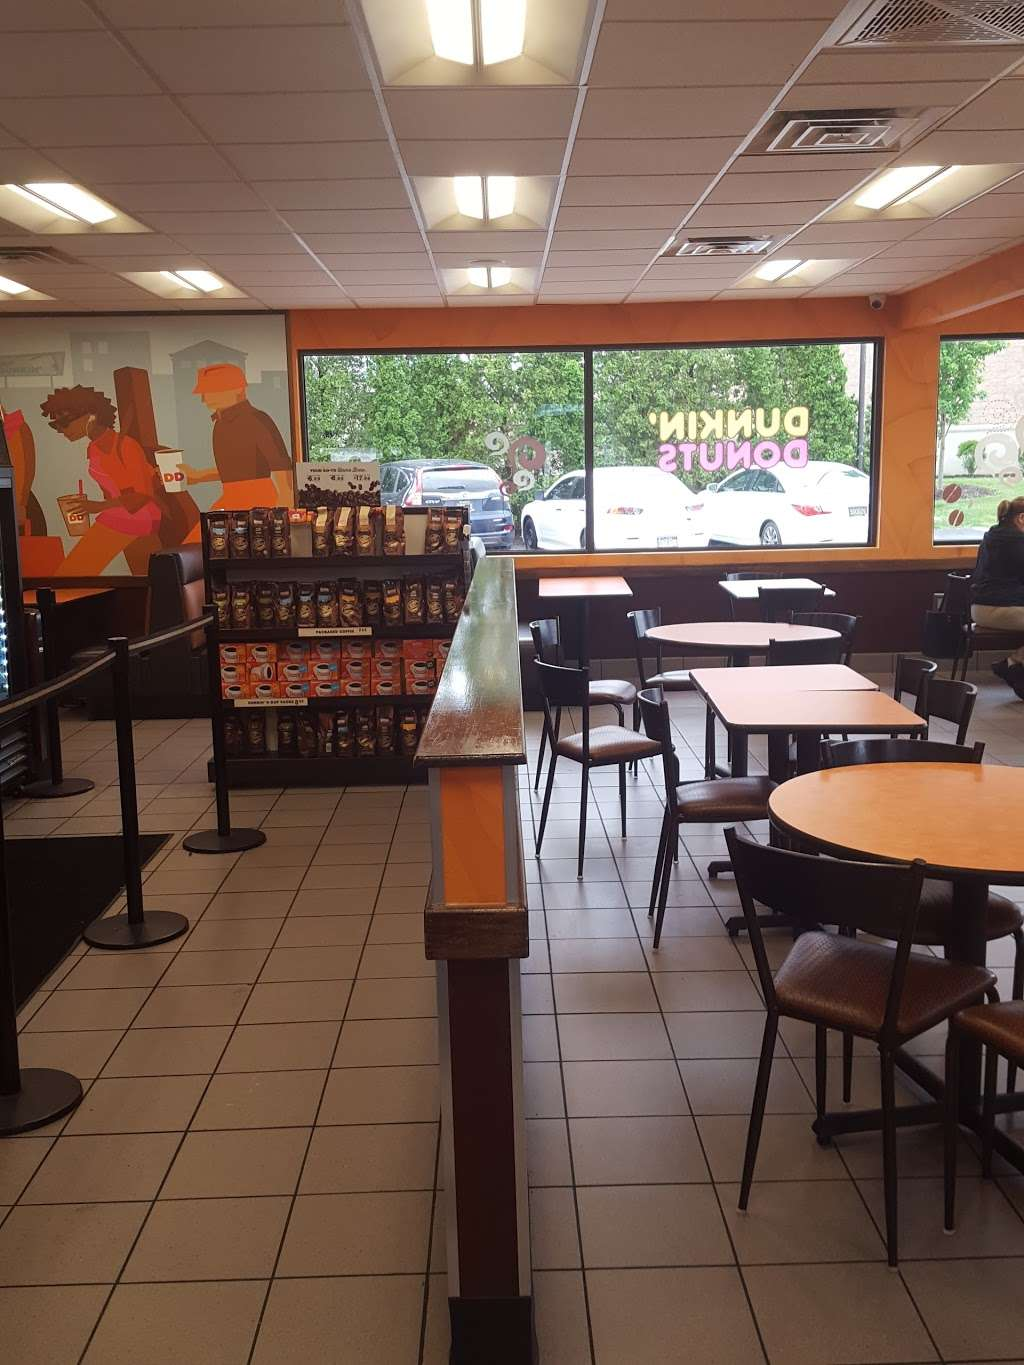 Dunkin Donuts - cafe  | Photo 5 of 10 | Address: 3804 Kirkwood Hwy, Wilmington, DE 19808, USA | Phone: (302) 998-1600